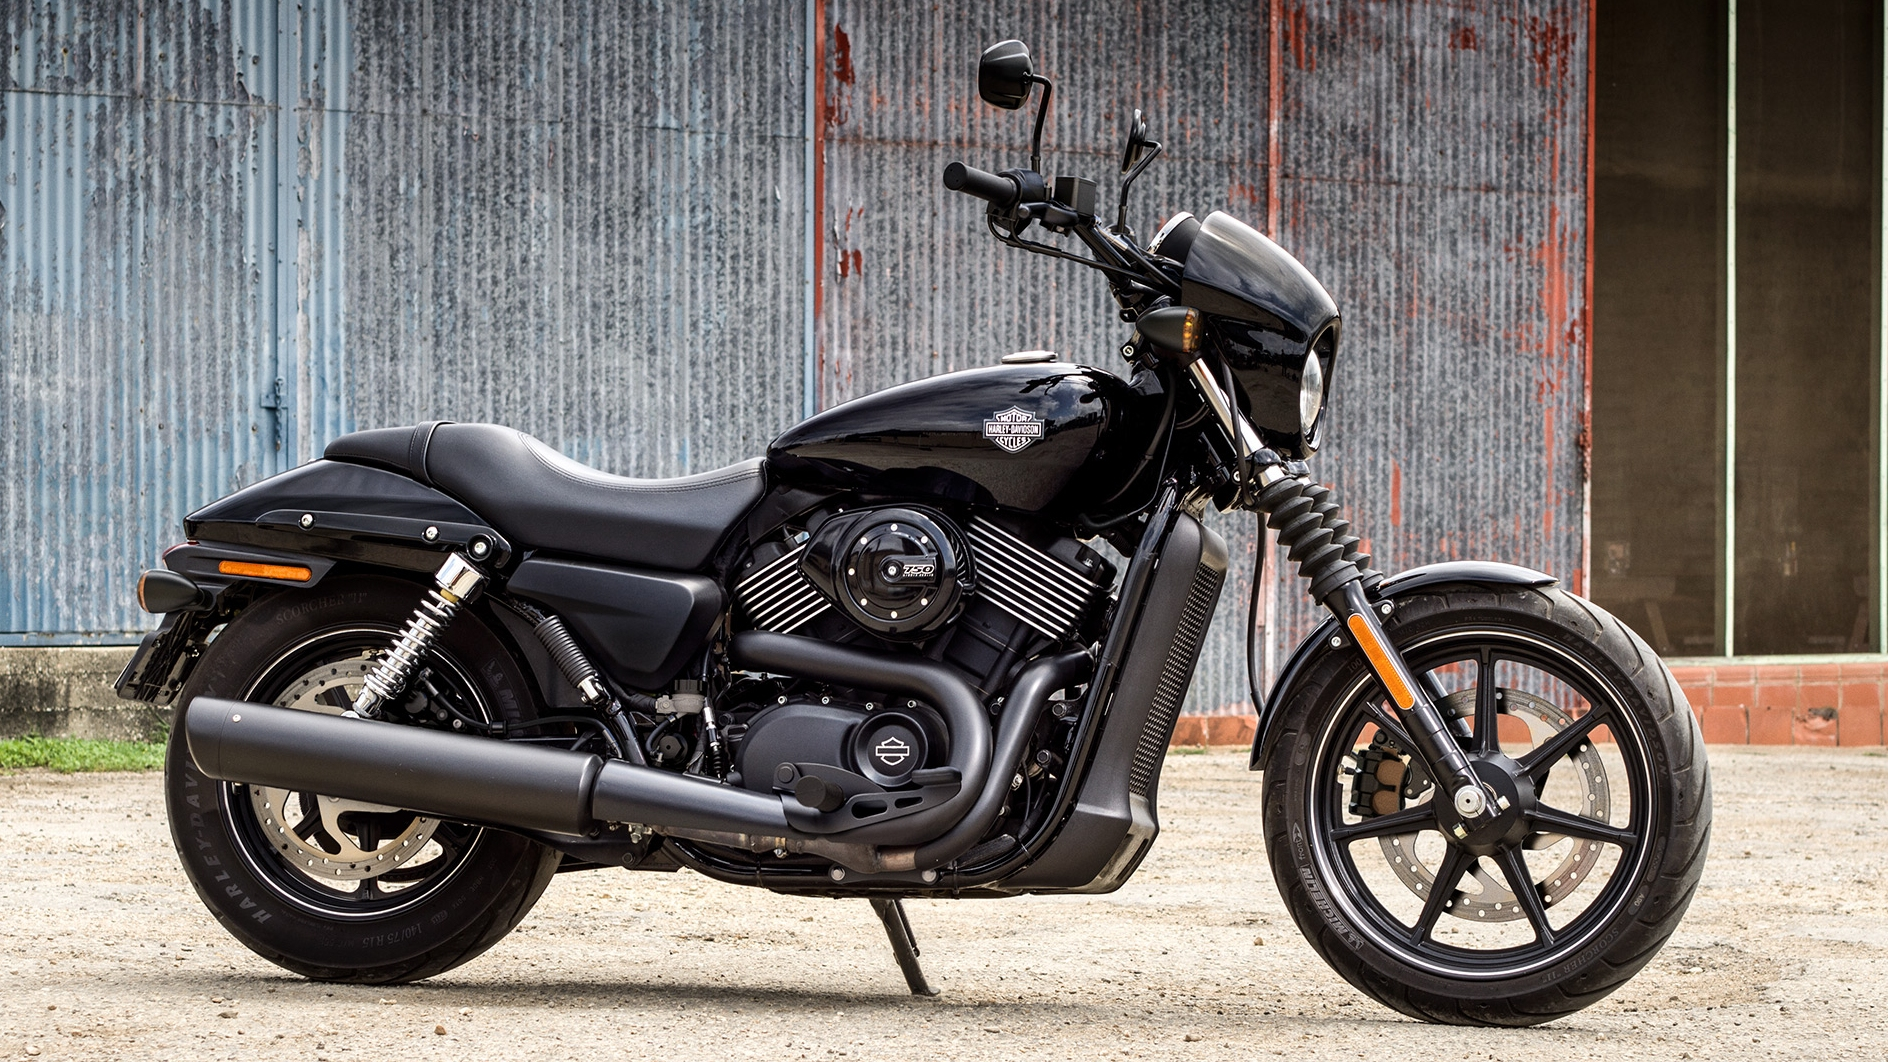 2016 - 2019 Harley-Davidson Street 500 / Street 750 | Top Speed